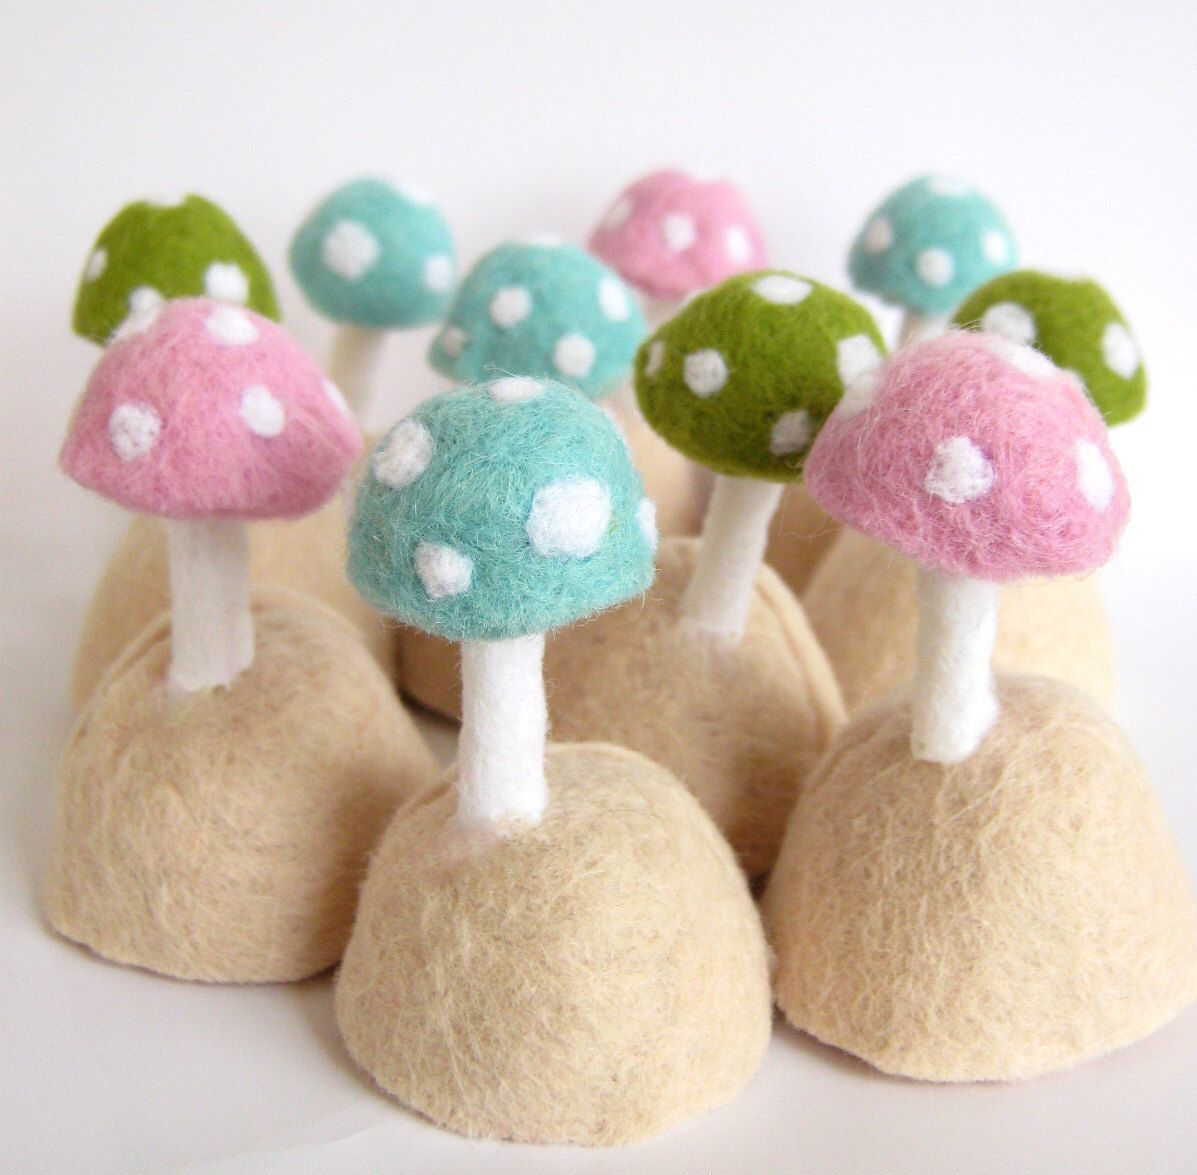 Wedding - 10 Name Card - Menu Holders - Photo Stand - Party Favor - Needle Felted Toadstools by FeltVille on Etsy https://www.etsy.com/listing/73460184/wedding-10-name-card-menu-holders-photo